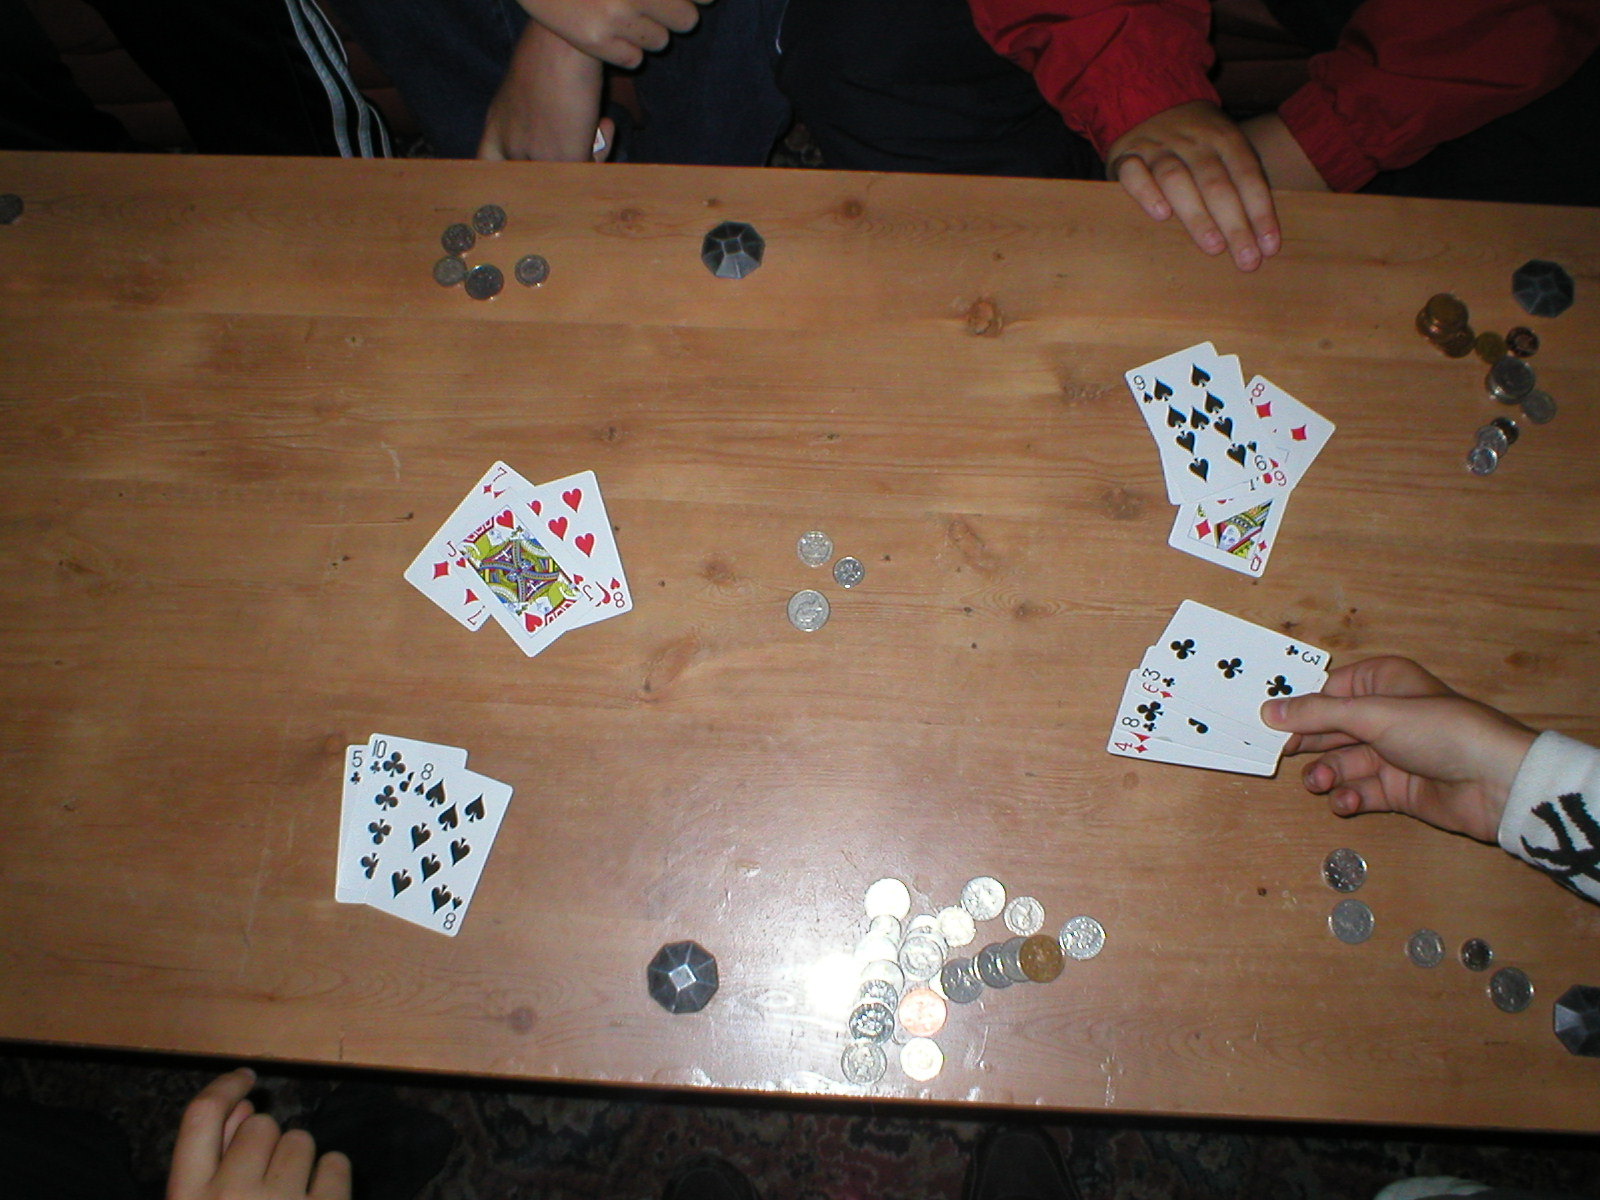 photograph relating to Printable Rules for Hand and Foot Card Game named 10 pennies - Wikipedia